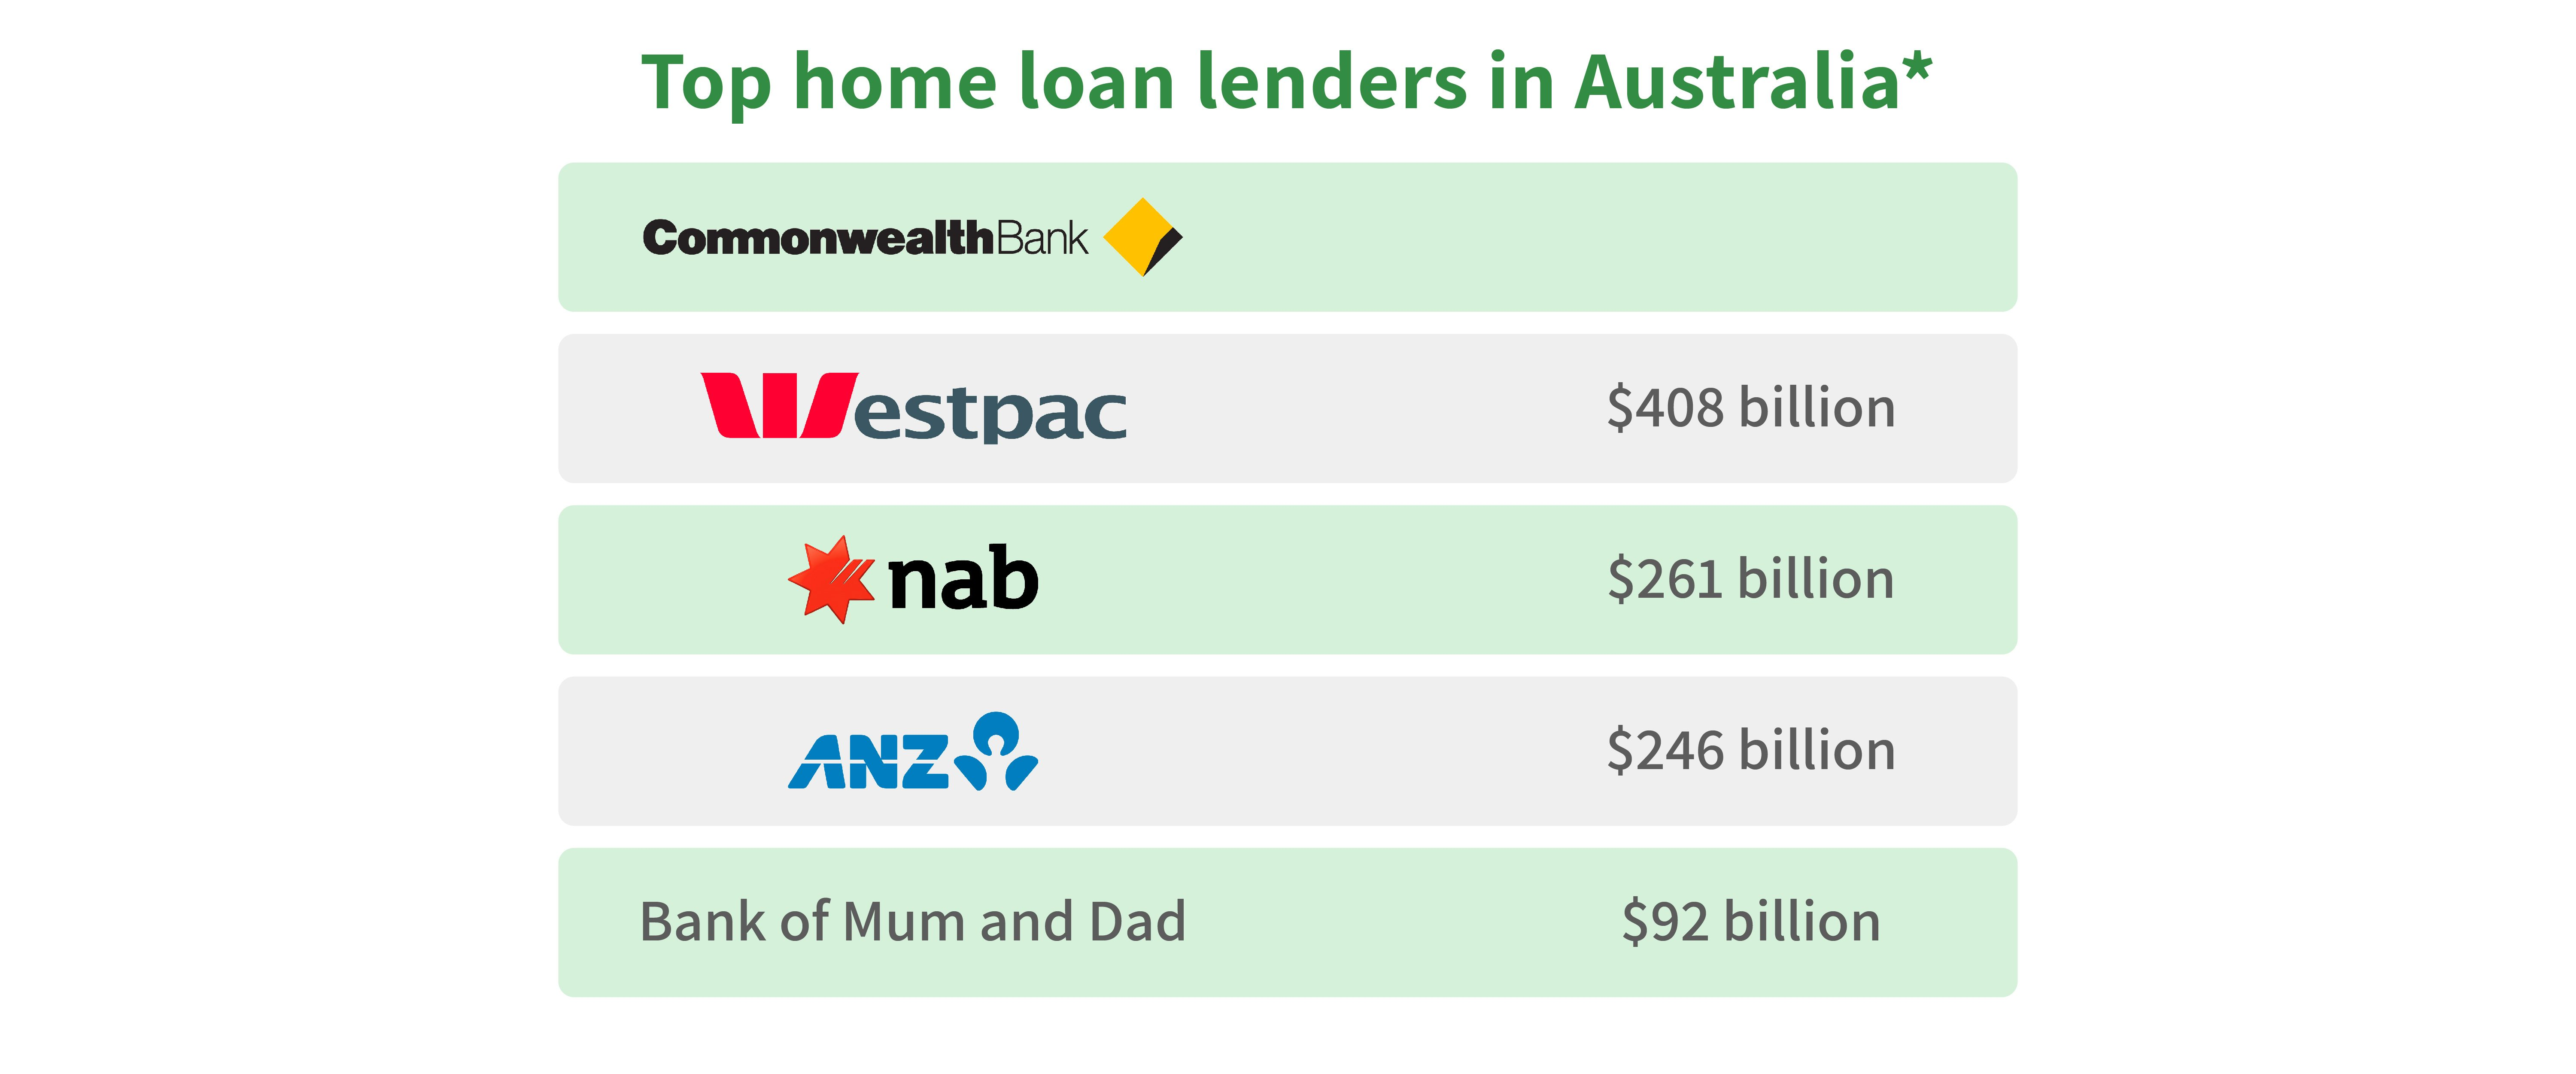 bank-of-mum-and-larger-lenders